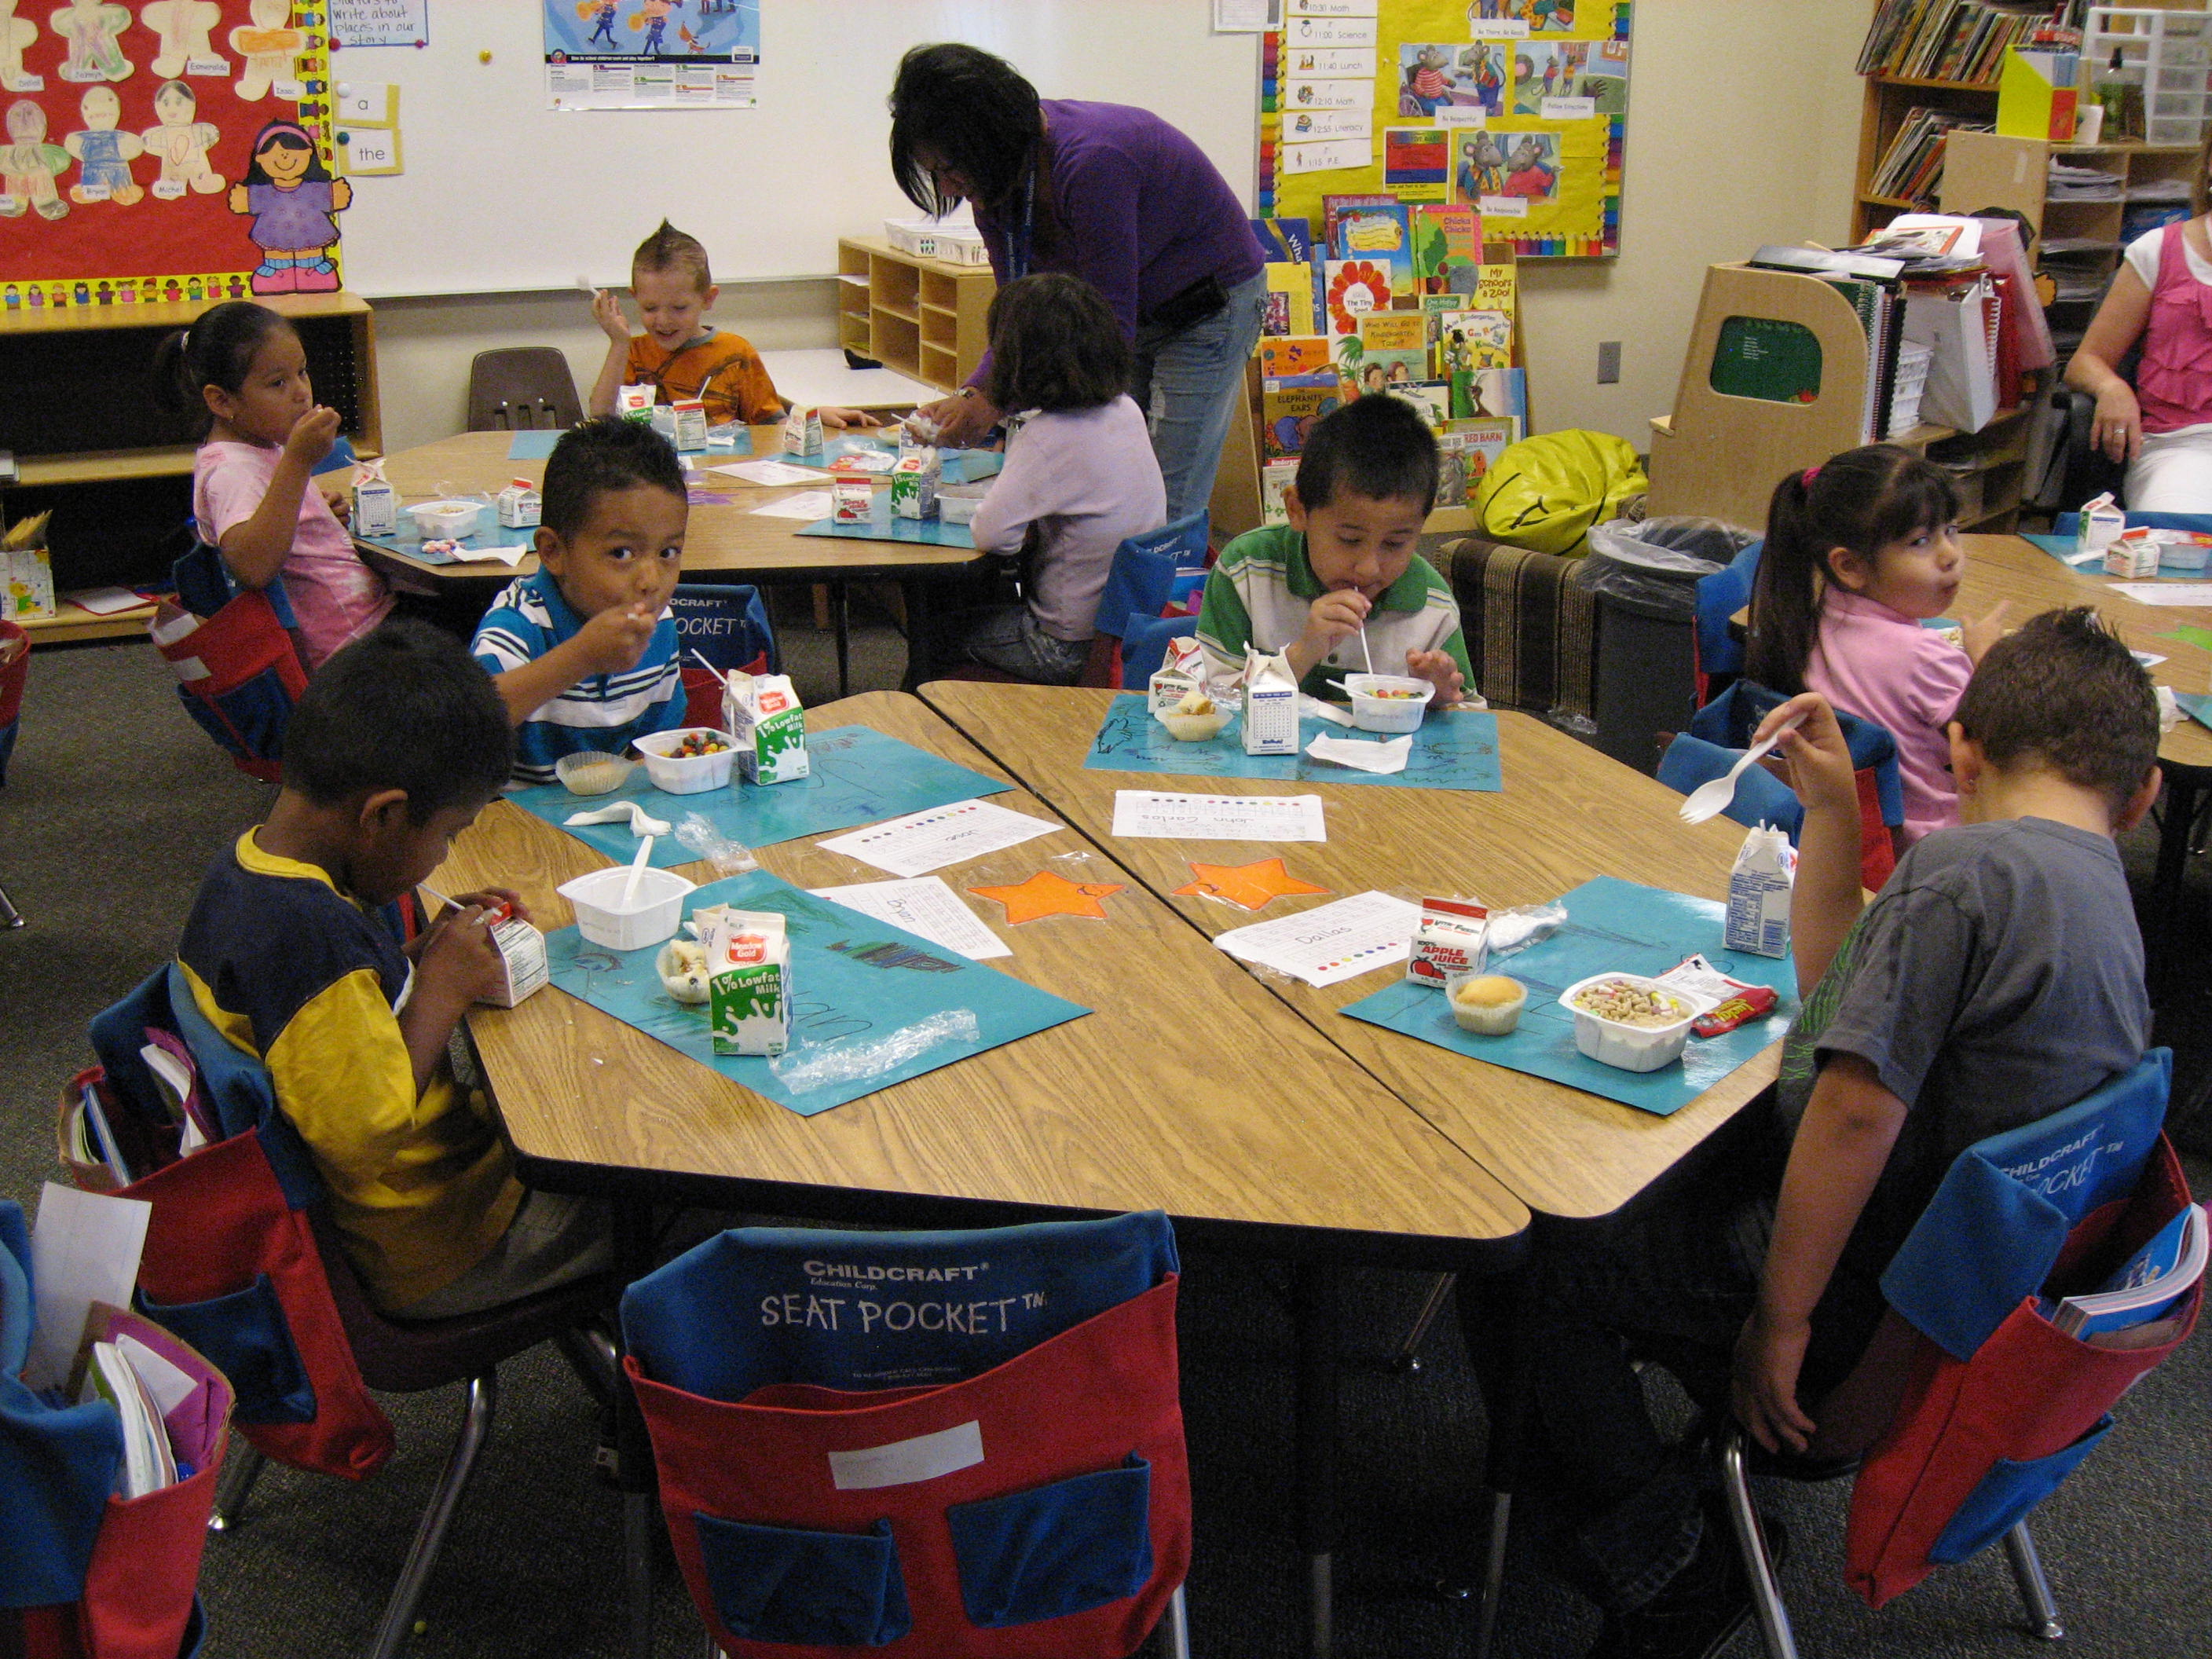 Students at a local elementary school participate in the Breakfast in the Classroom program. Marti Woolford, child nutrition advocate for Utahns Against Hunger, says these programs are very effective in increasing student participation and academic performance. (Utahns Against Hunger)